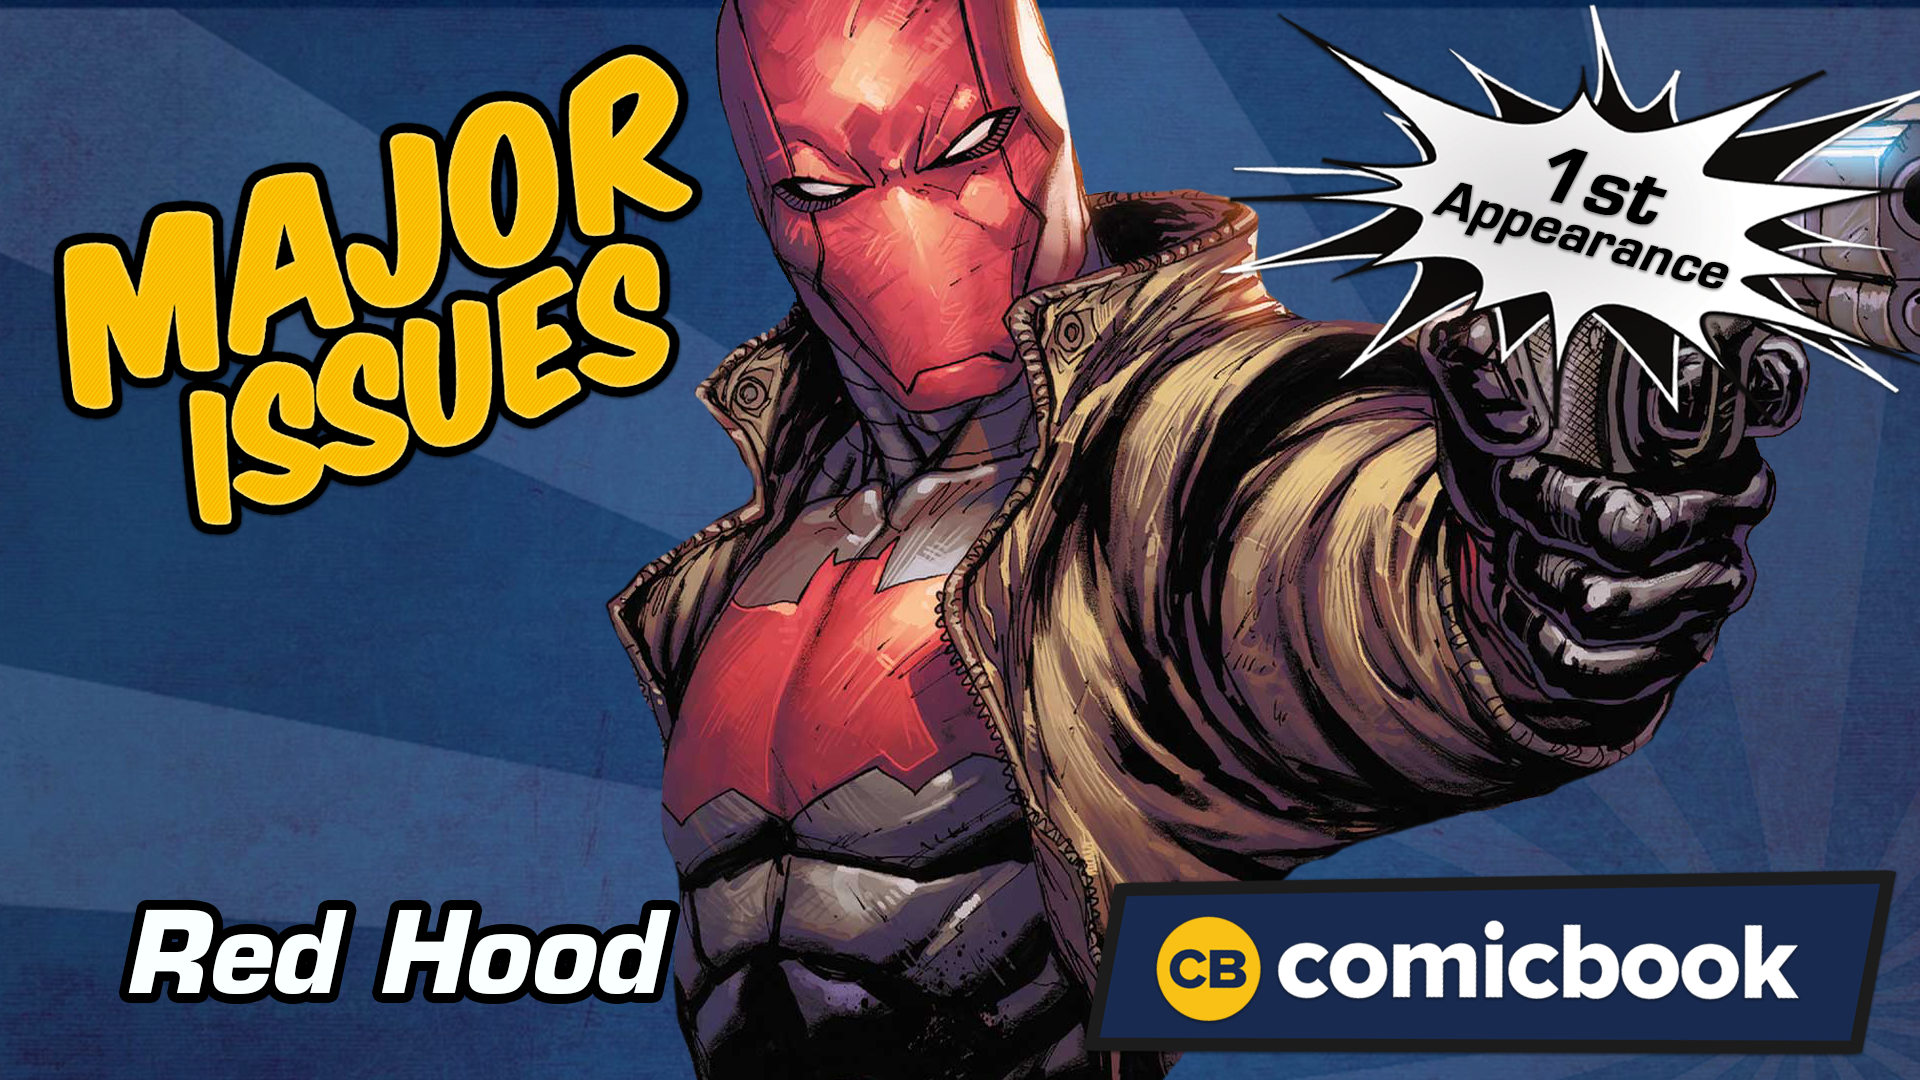 Red Hood's First Appearance - Major Issues screen capture